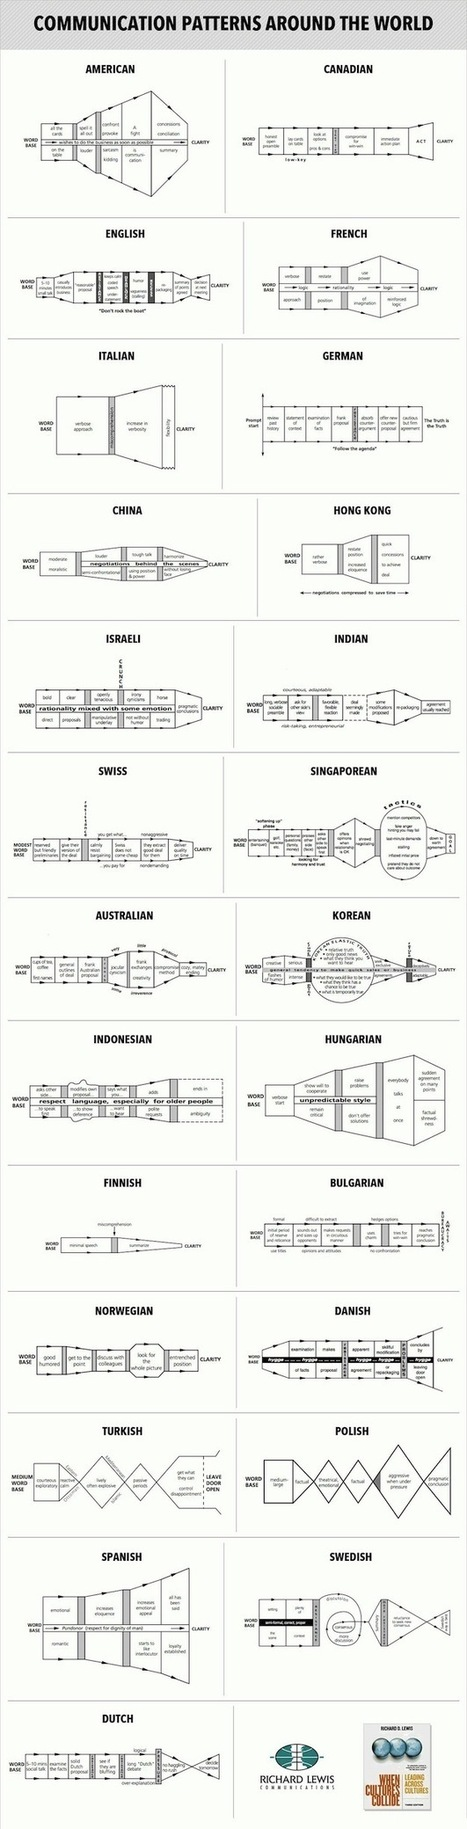 Communication Charts Help You Negotiate In Different Cultures - PSFK | Management & Efficiency | Scoop.it